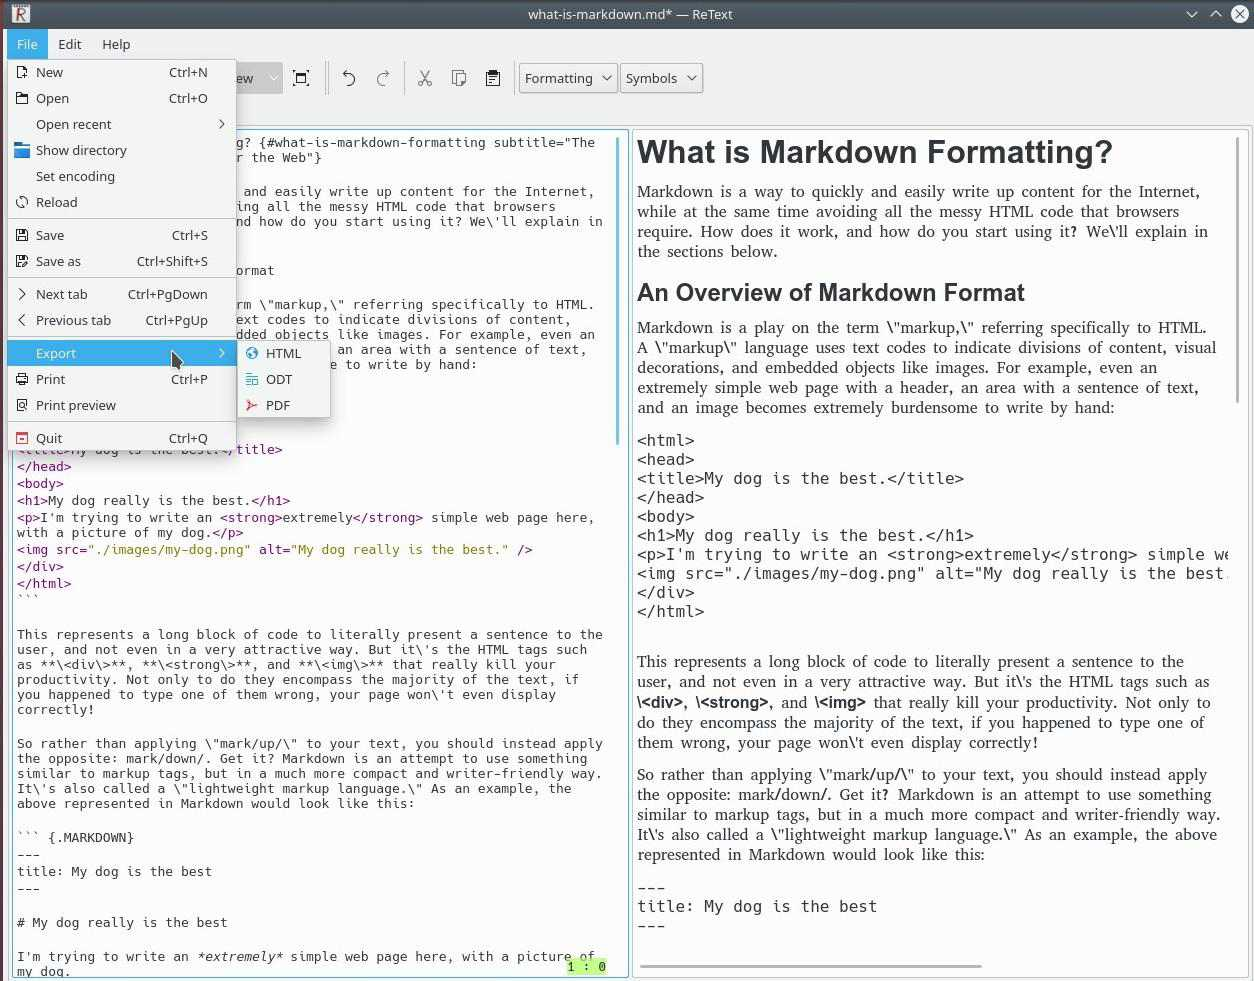 ReText, the Markdown Editor, Showing Live Preview and Export Options.